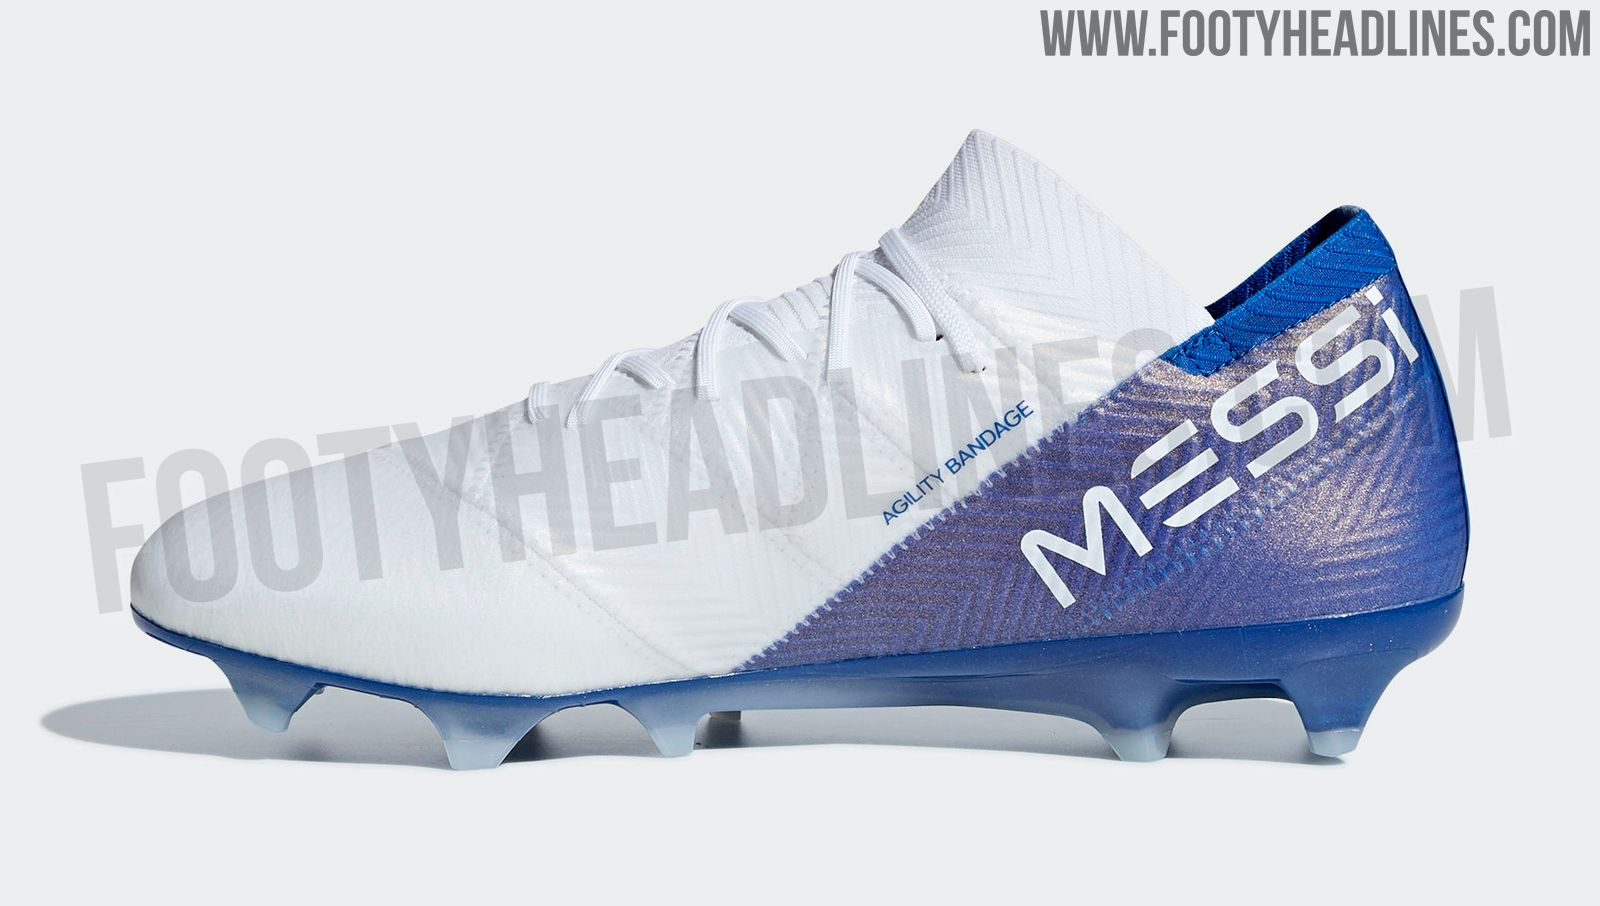 cf0caf0c6a5e14 Adidas Nemeziz Messi  Team Mode  2018 Boots Leaked - Footy Headlines